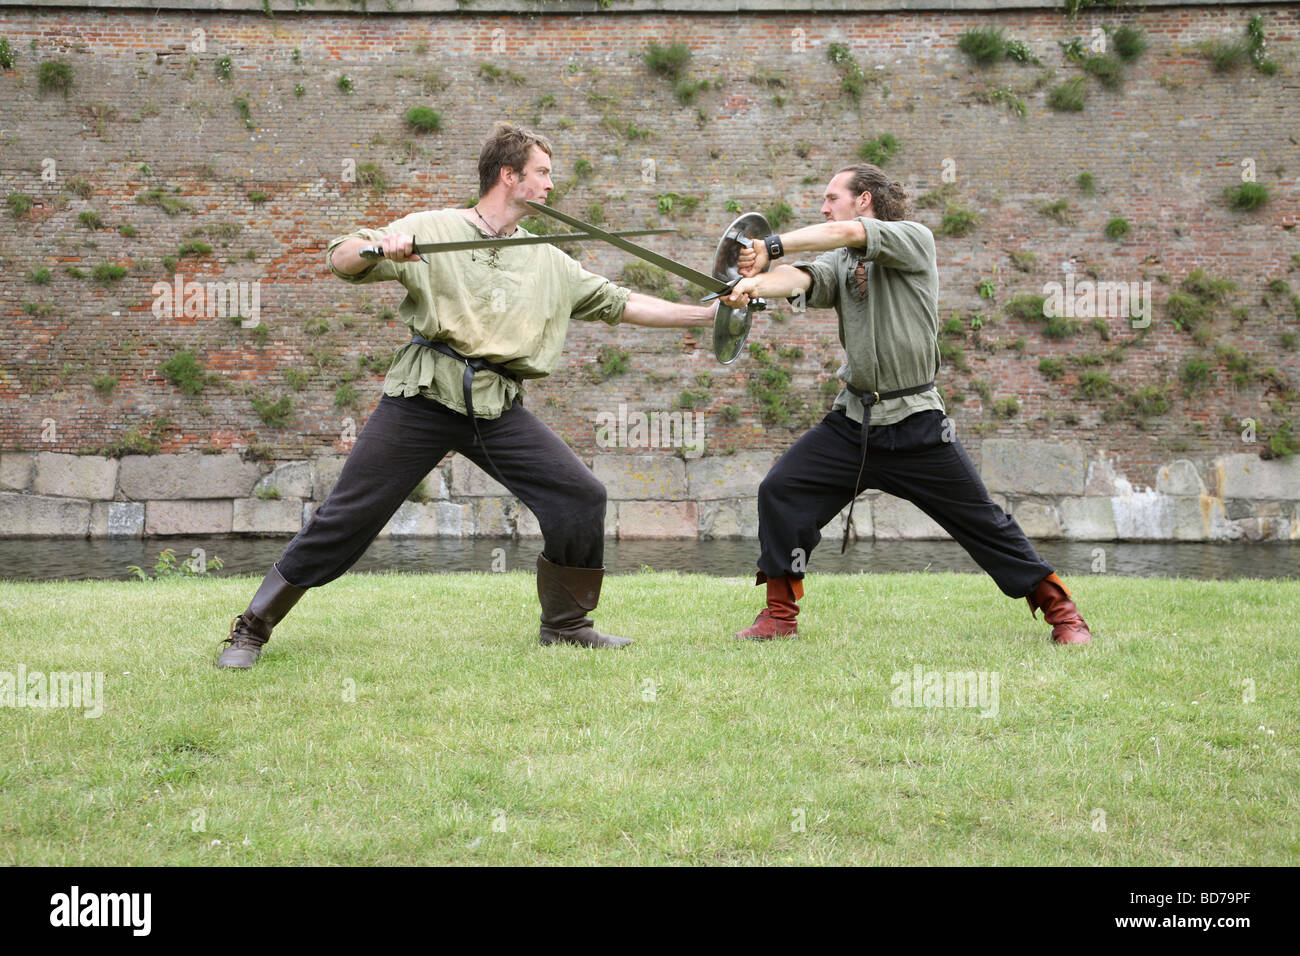 european historical combat guild showing ancient combat techniques